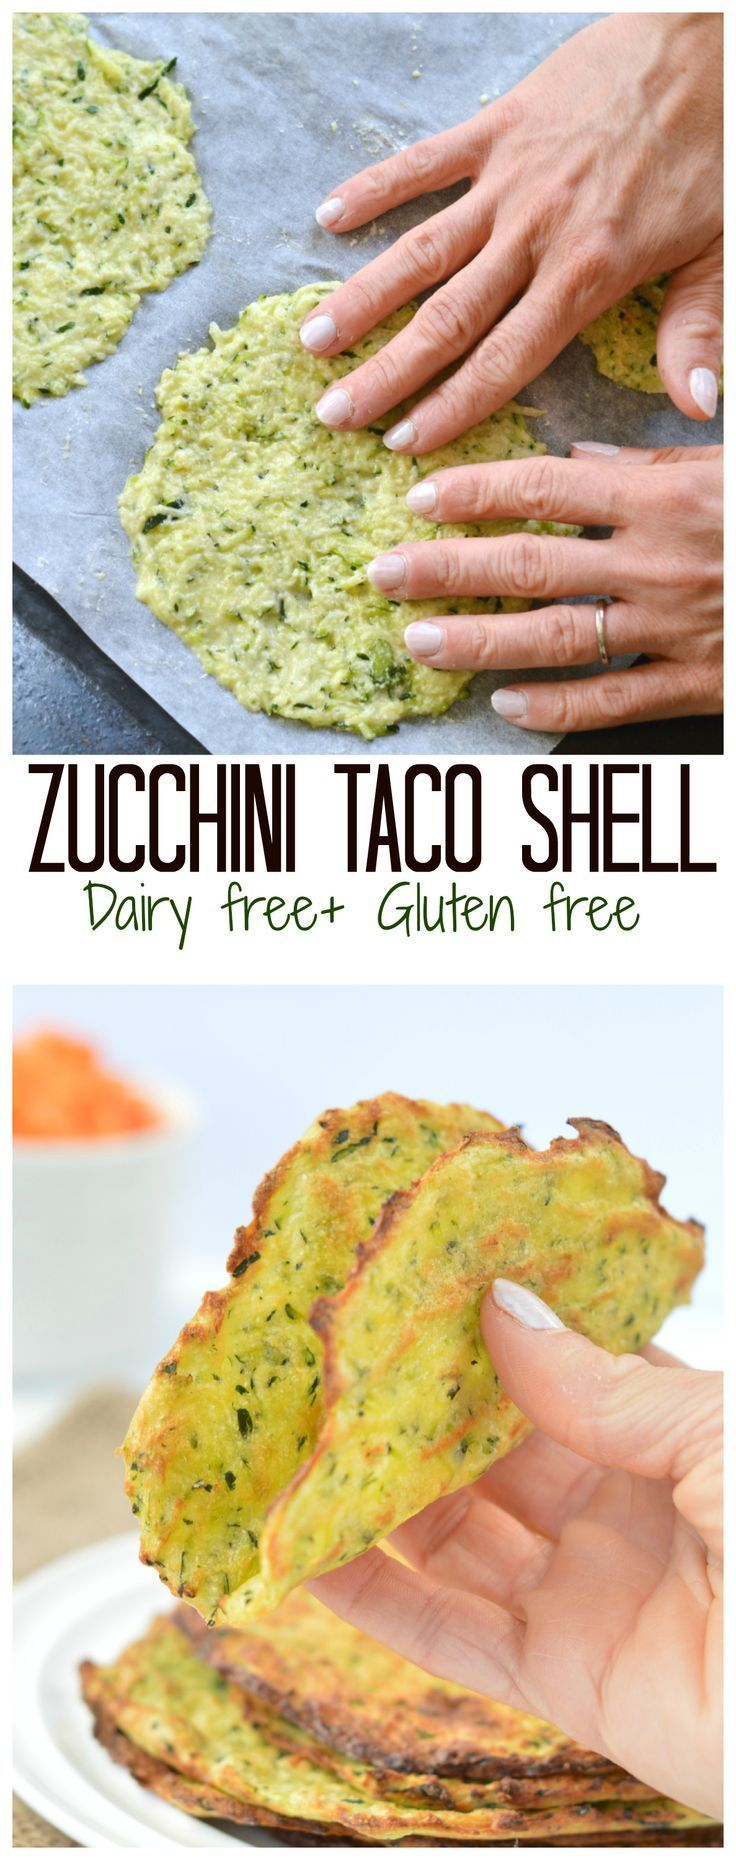 Gluten Free Zucchini Taco Shell are a super healthy soft taco idea for your next party! Thin, soft and won't crack! Easy to use as a tortilla or soft taco shell. No cheese in this recipe but healthy coconut flour and more! Click and get your recipe for your next game night! #grainfree #glutenfree #dairyfree